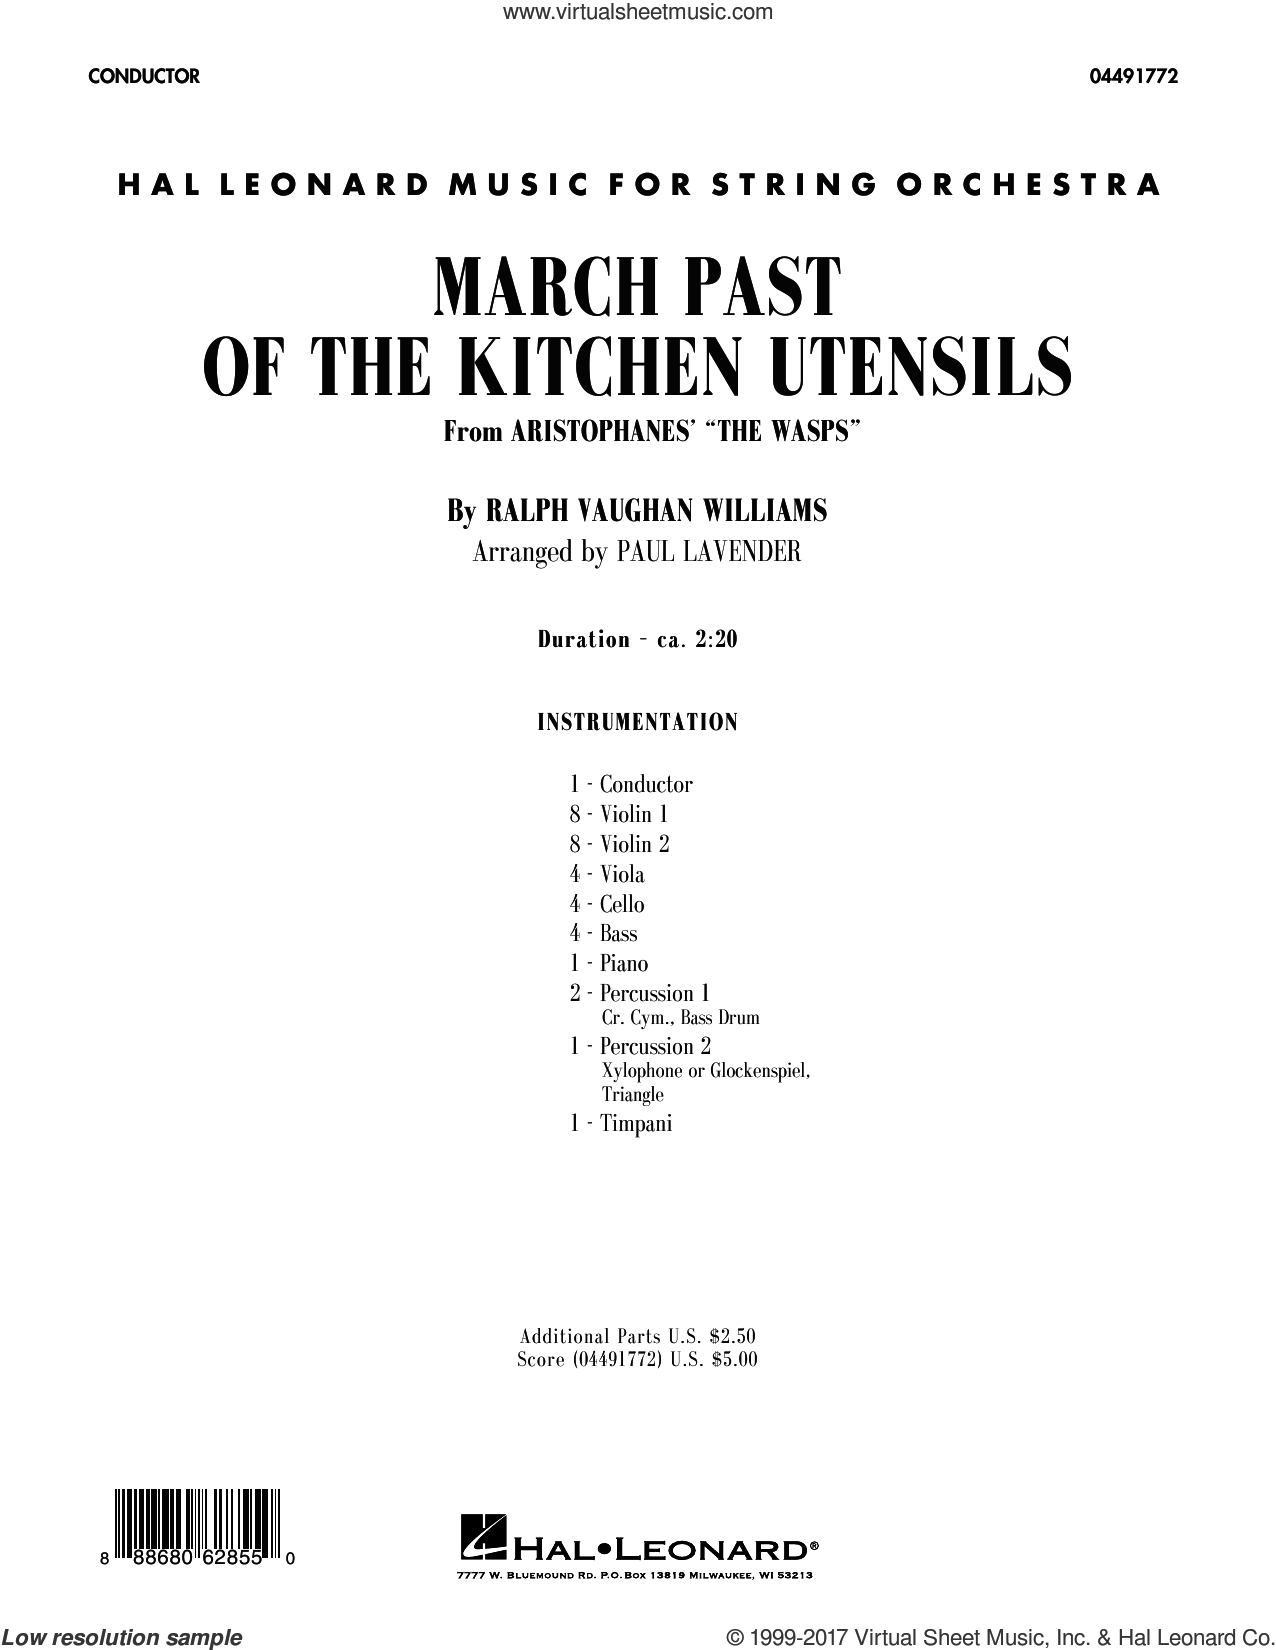 March Past of the Kitchen Utensils (from The Wasps) (COMPLETE) sheet music for orchestra by Paul Lavender and Ralph Vaughan Williams, classical score, intermediate skill level